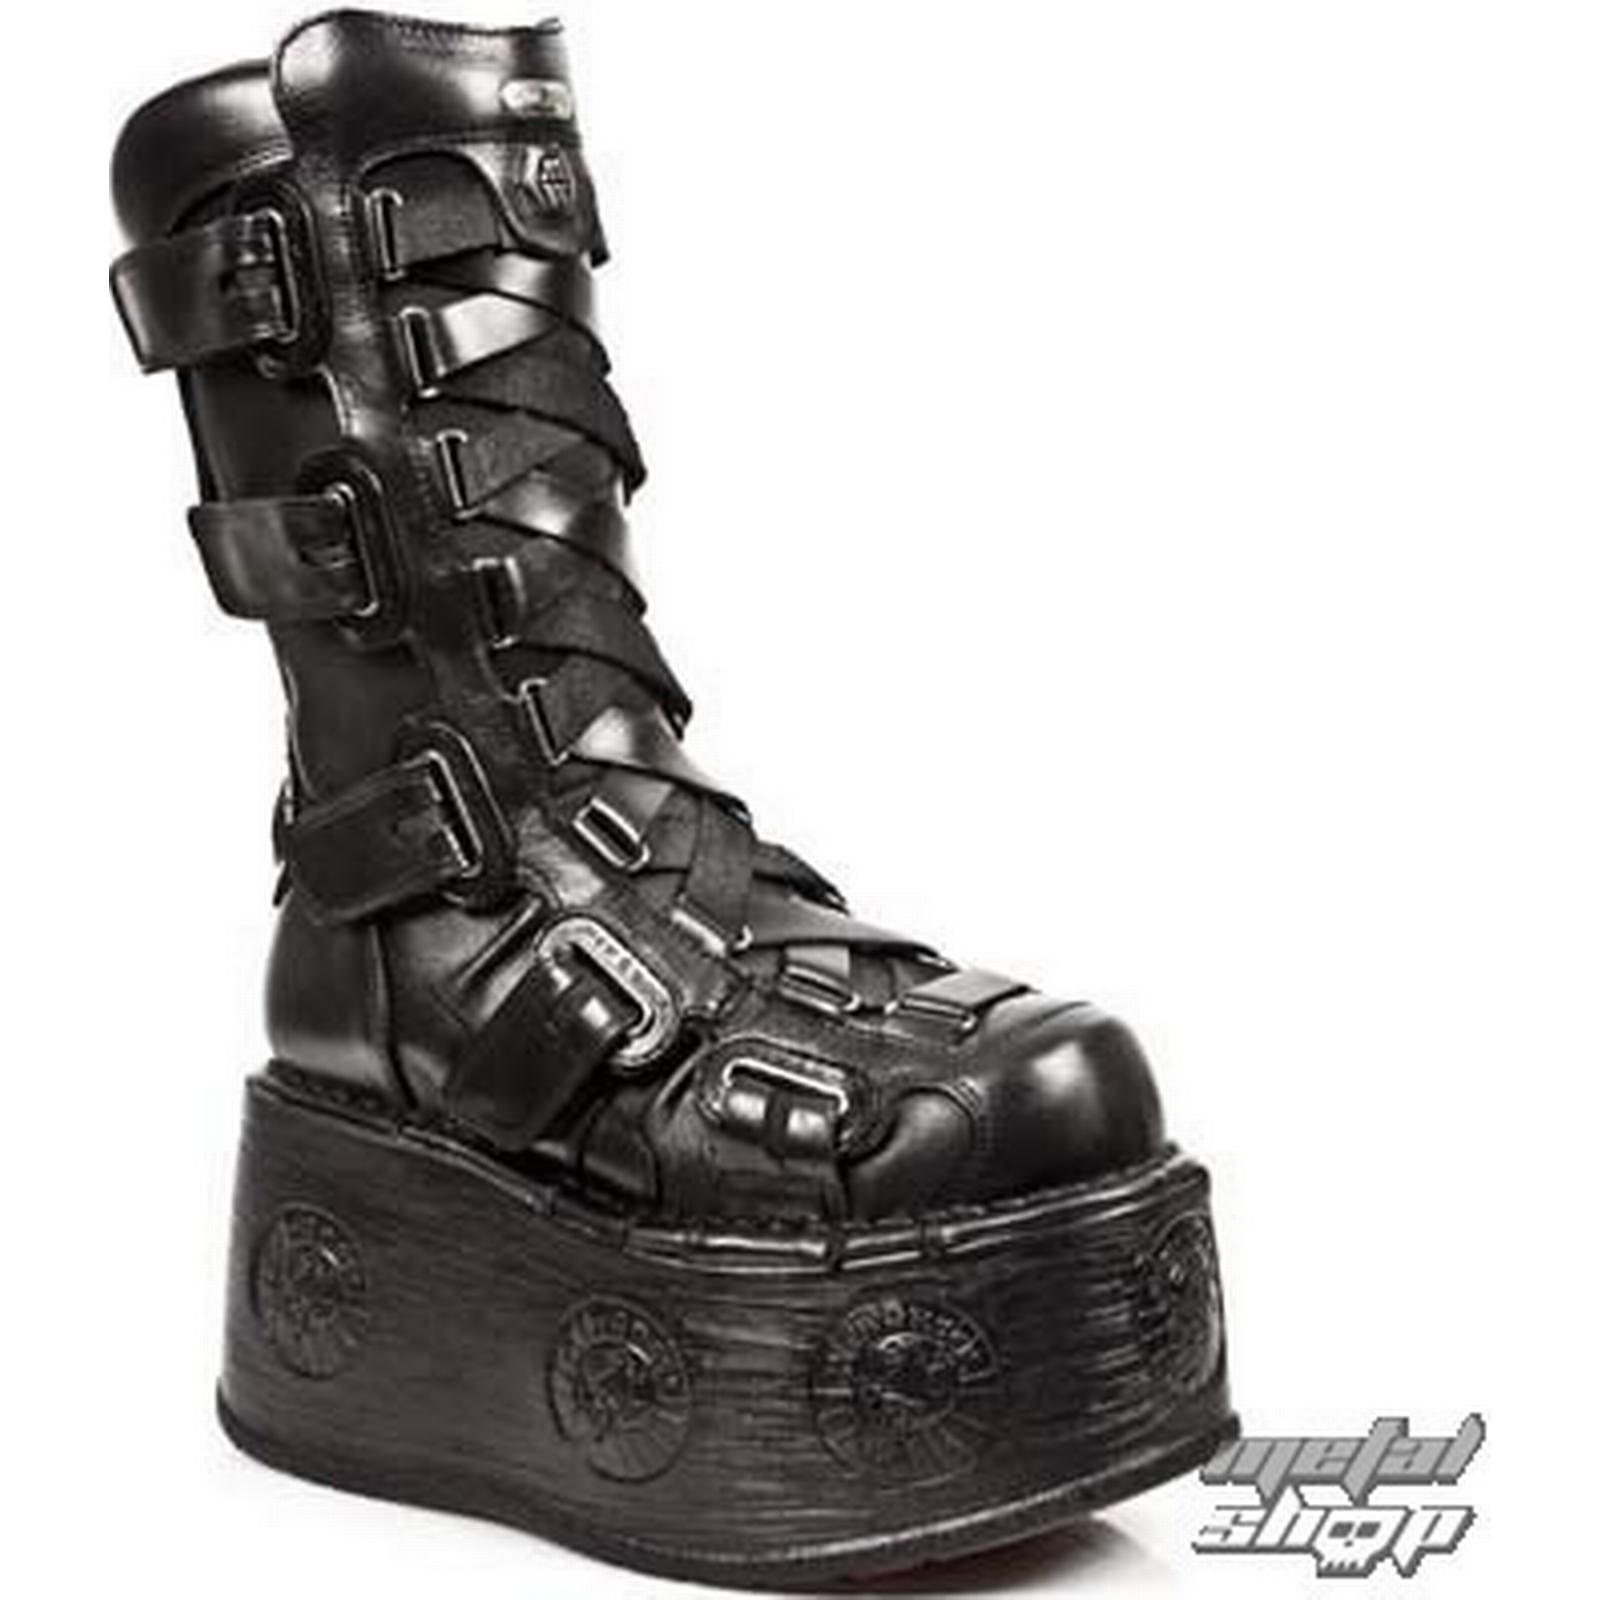 NEW ROCK leather ROCK boots women's - 189-S1 - NEW ROCK leather - M.189-S1 1b8f1b